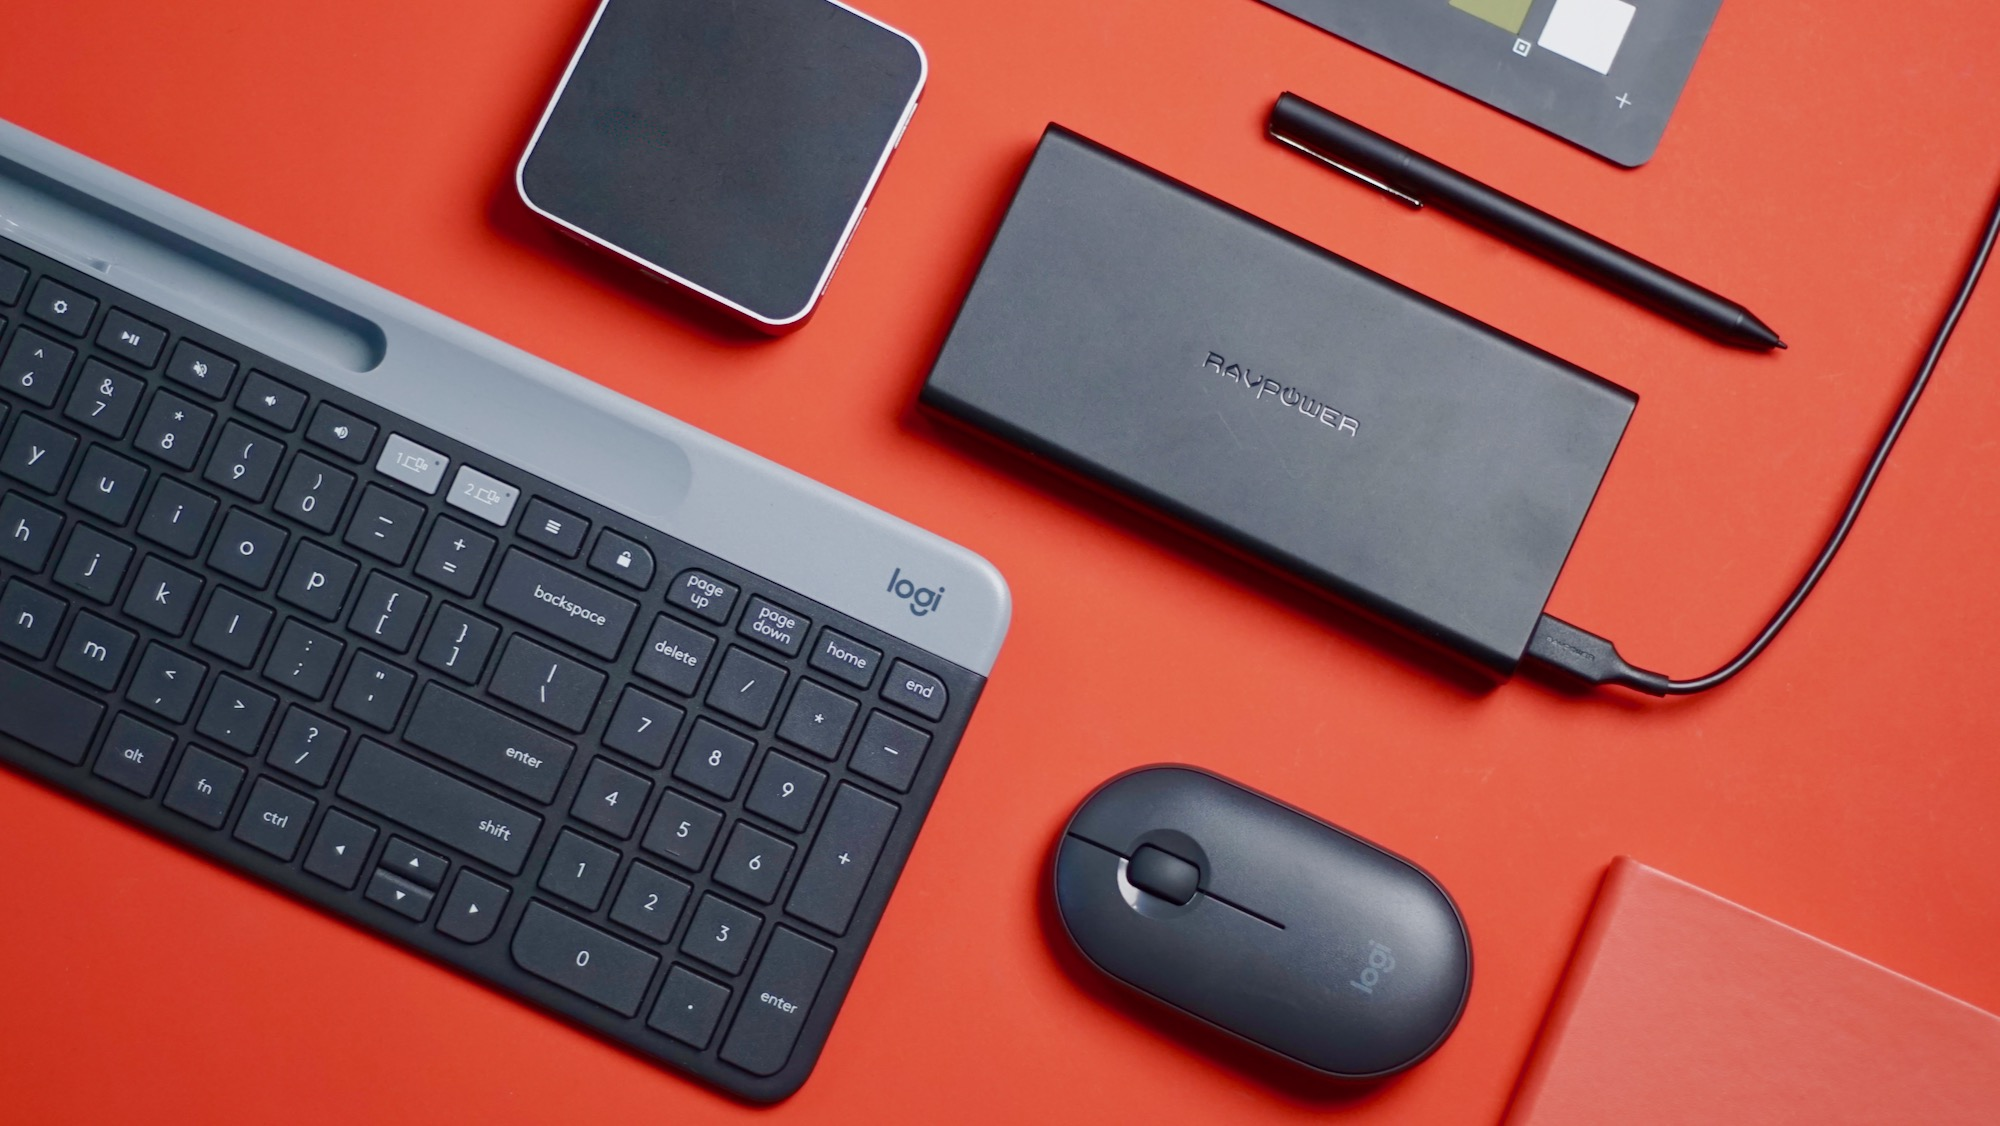 Here are 5 Chromebook accessories under $50 that everyone should check out